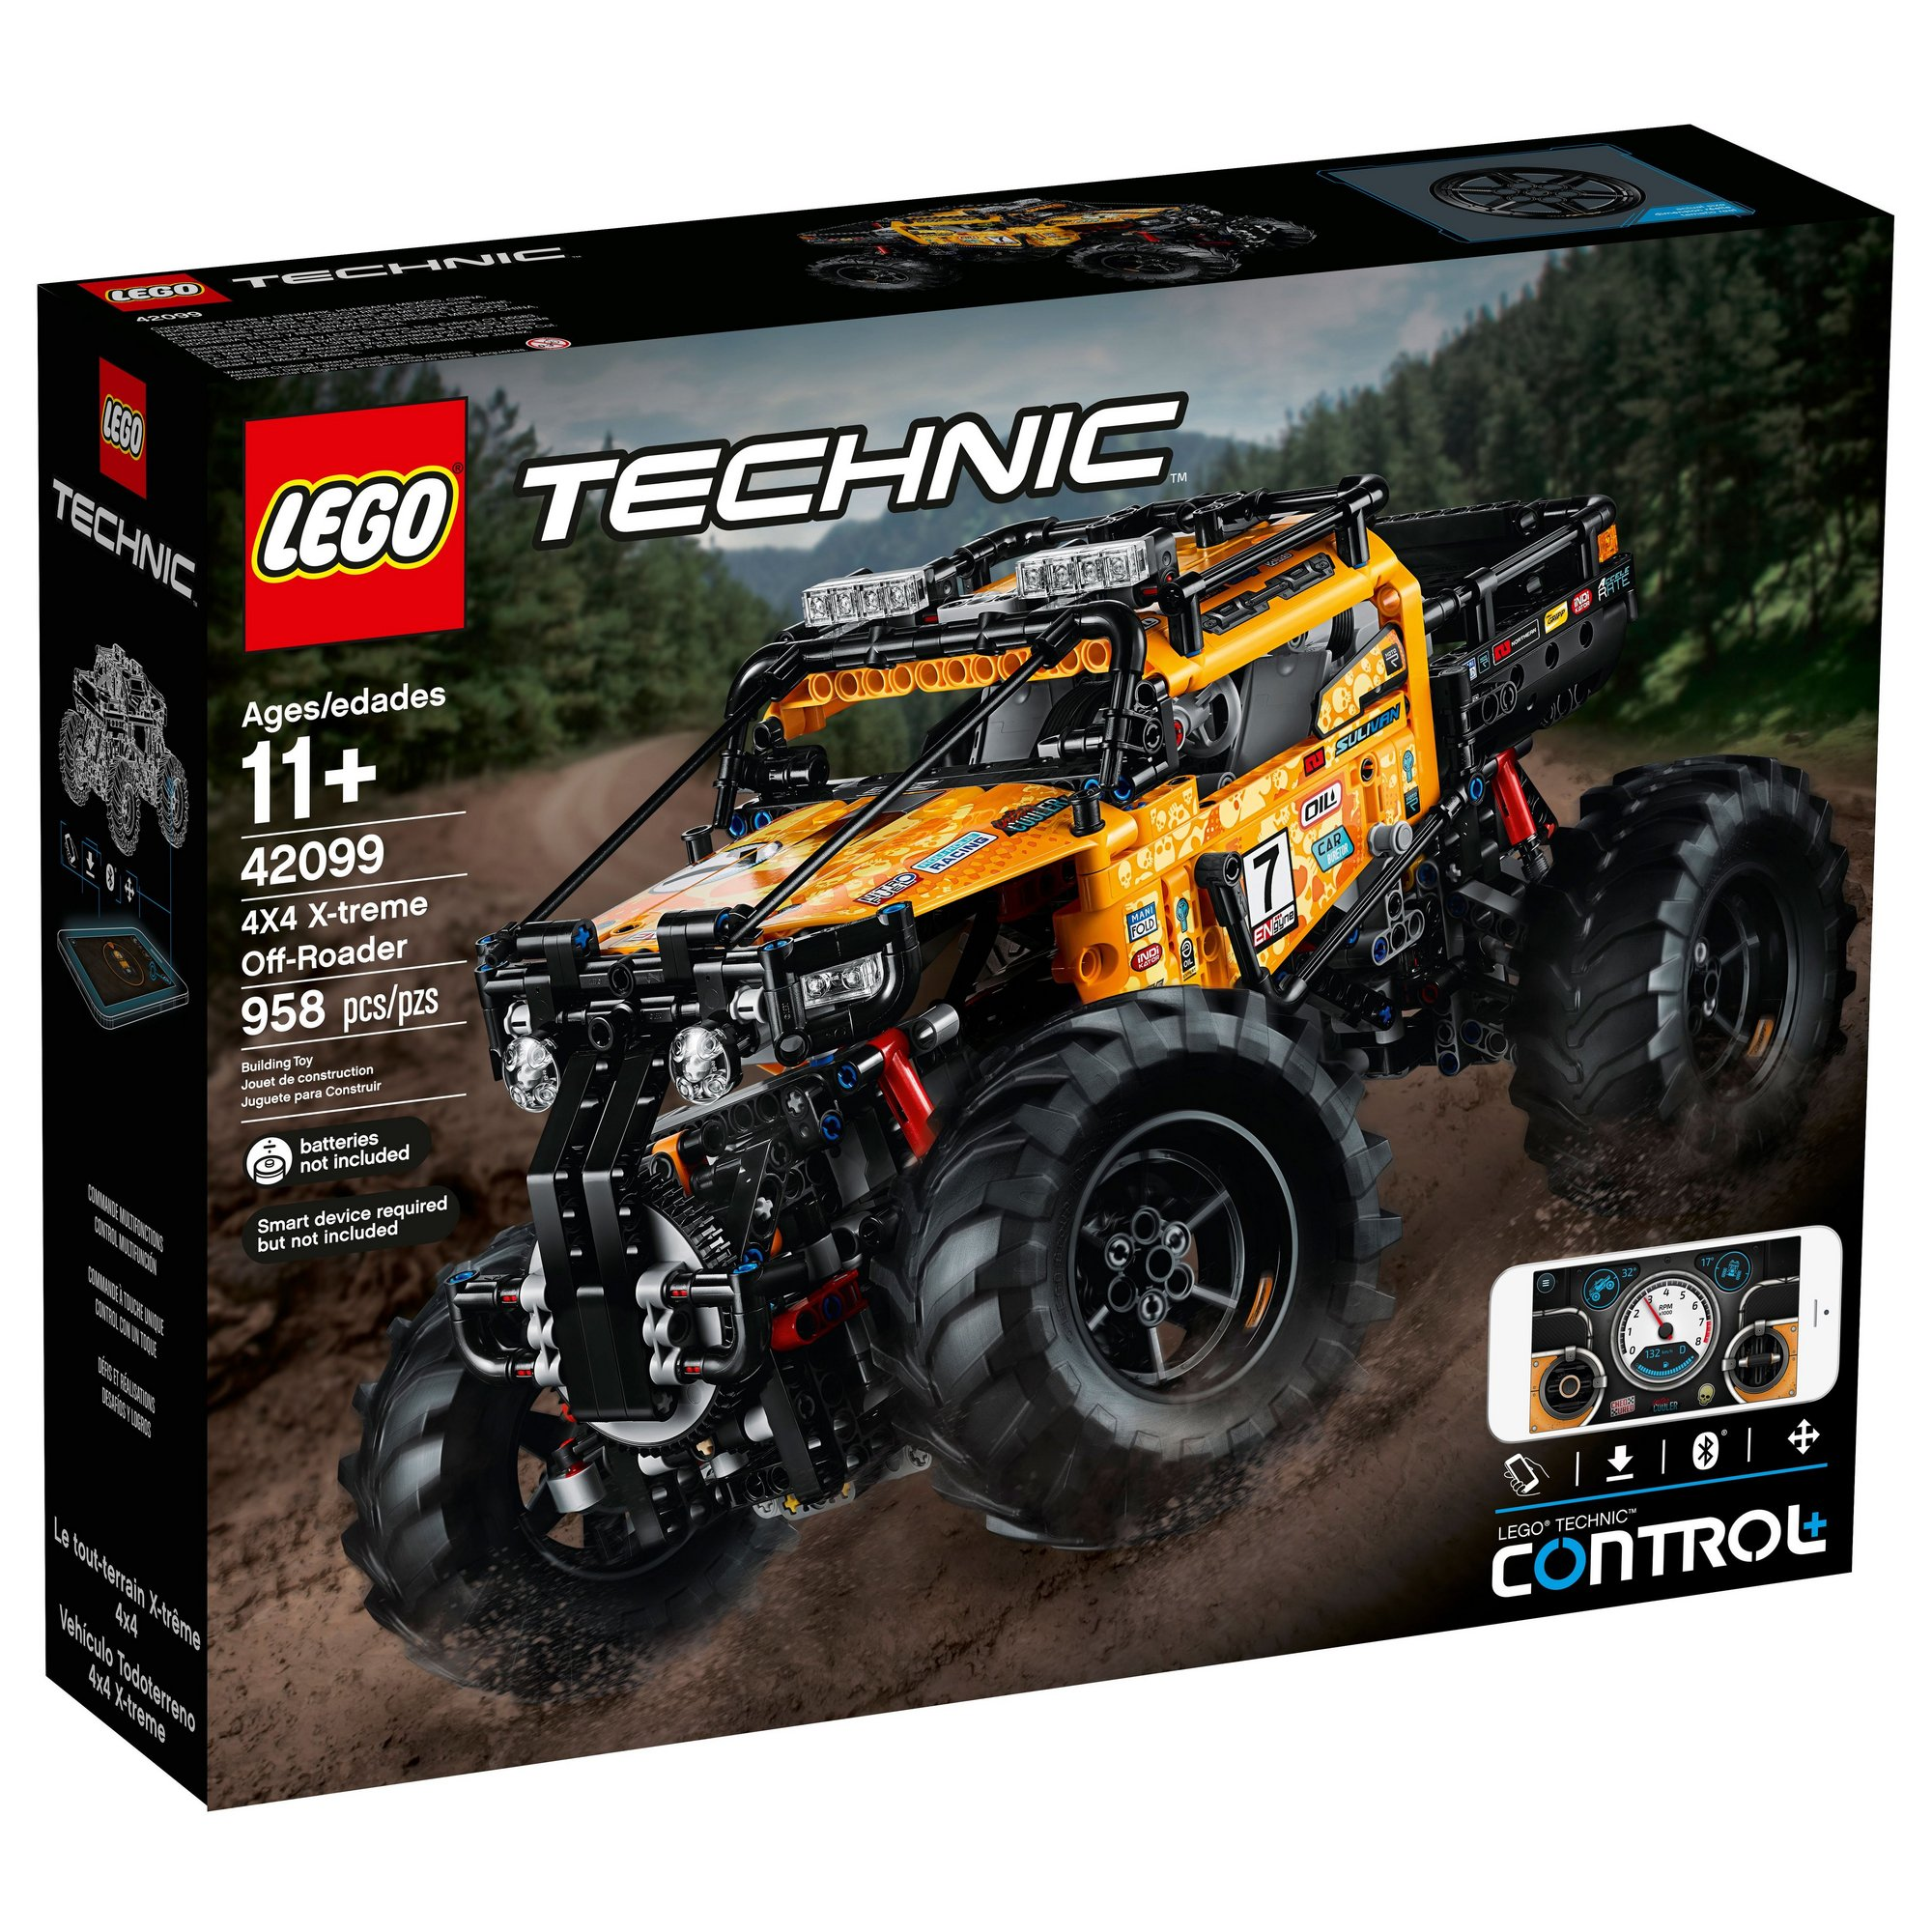 Image of LEGO Technic 4X4 X-treme Off-Roader